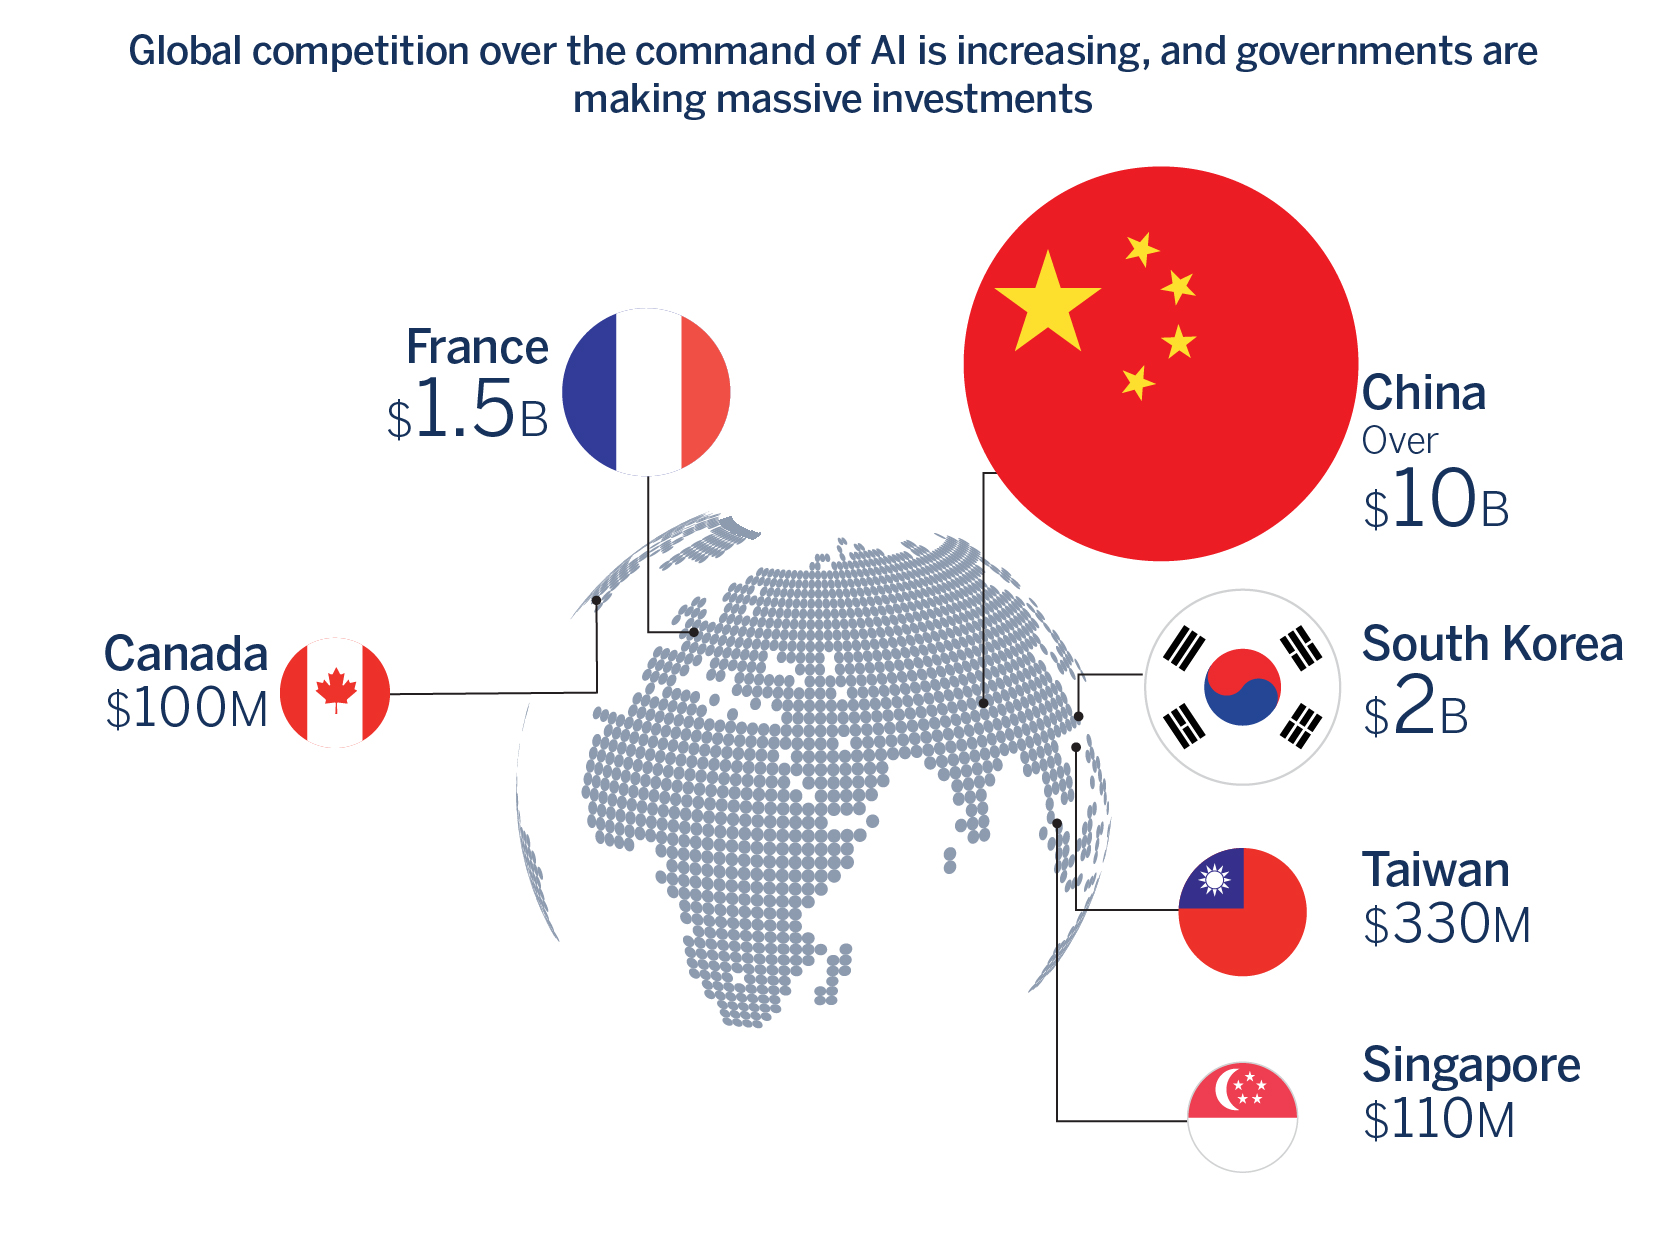 Global competition over leadership in AI is increasing, and governments are making massive investments